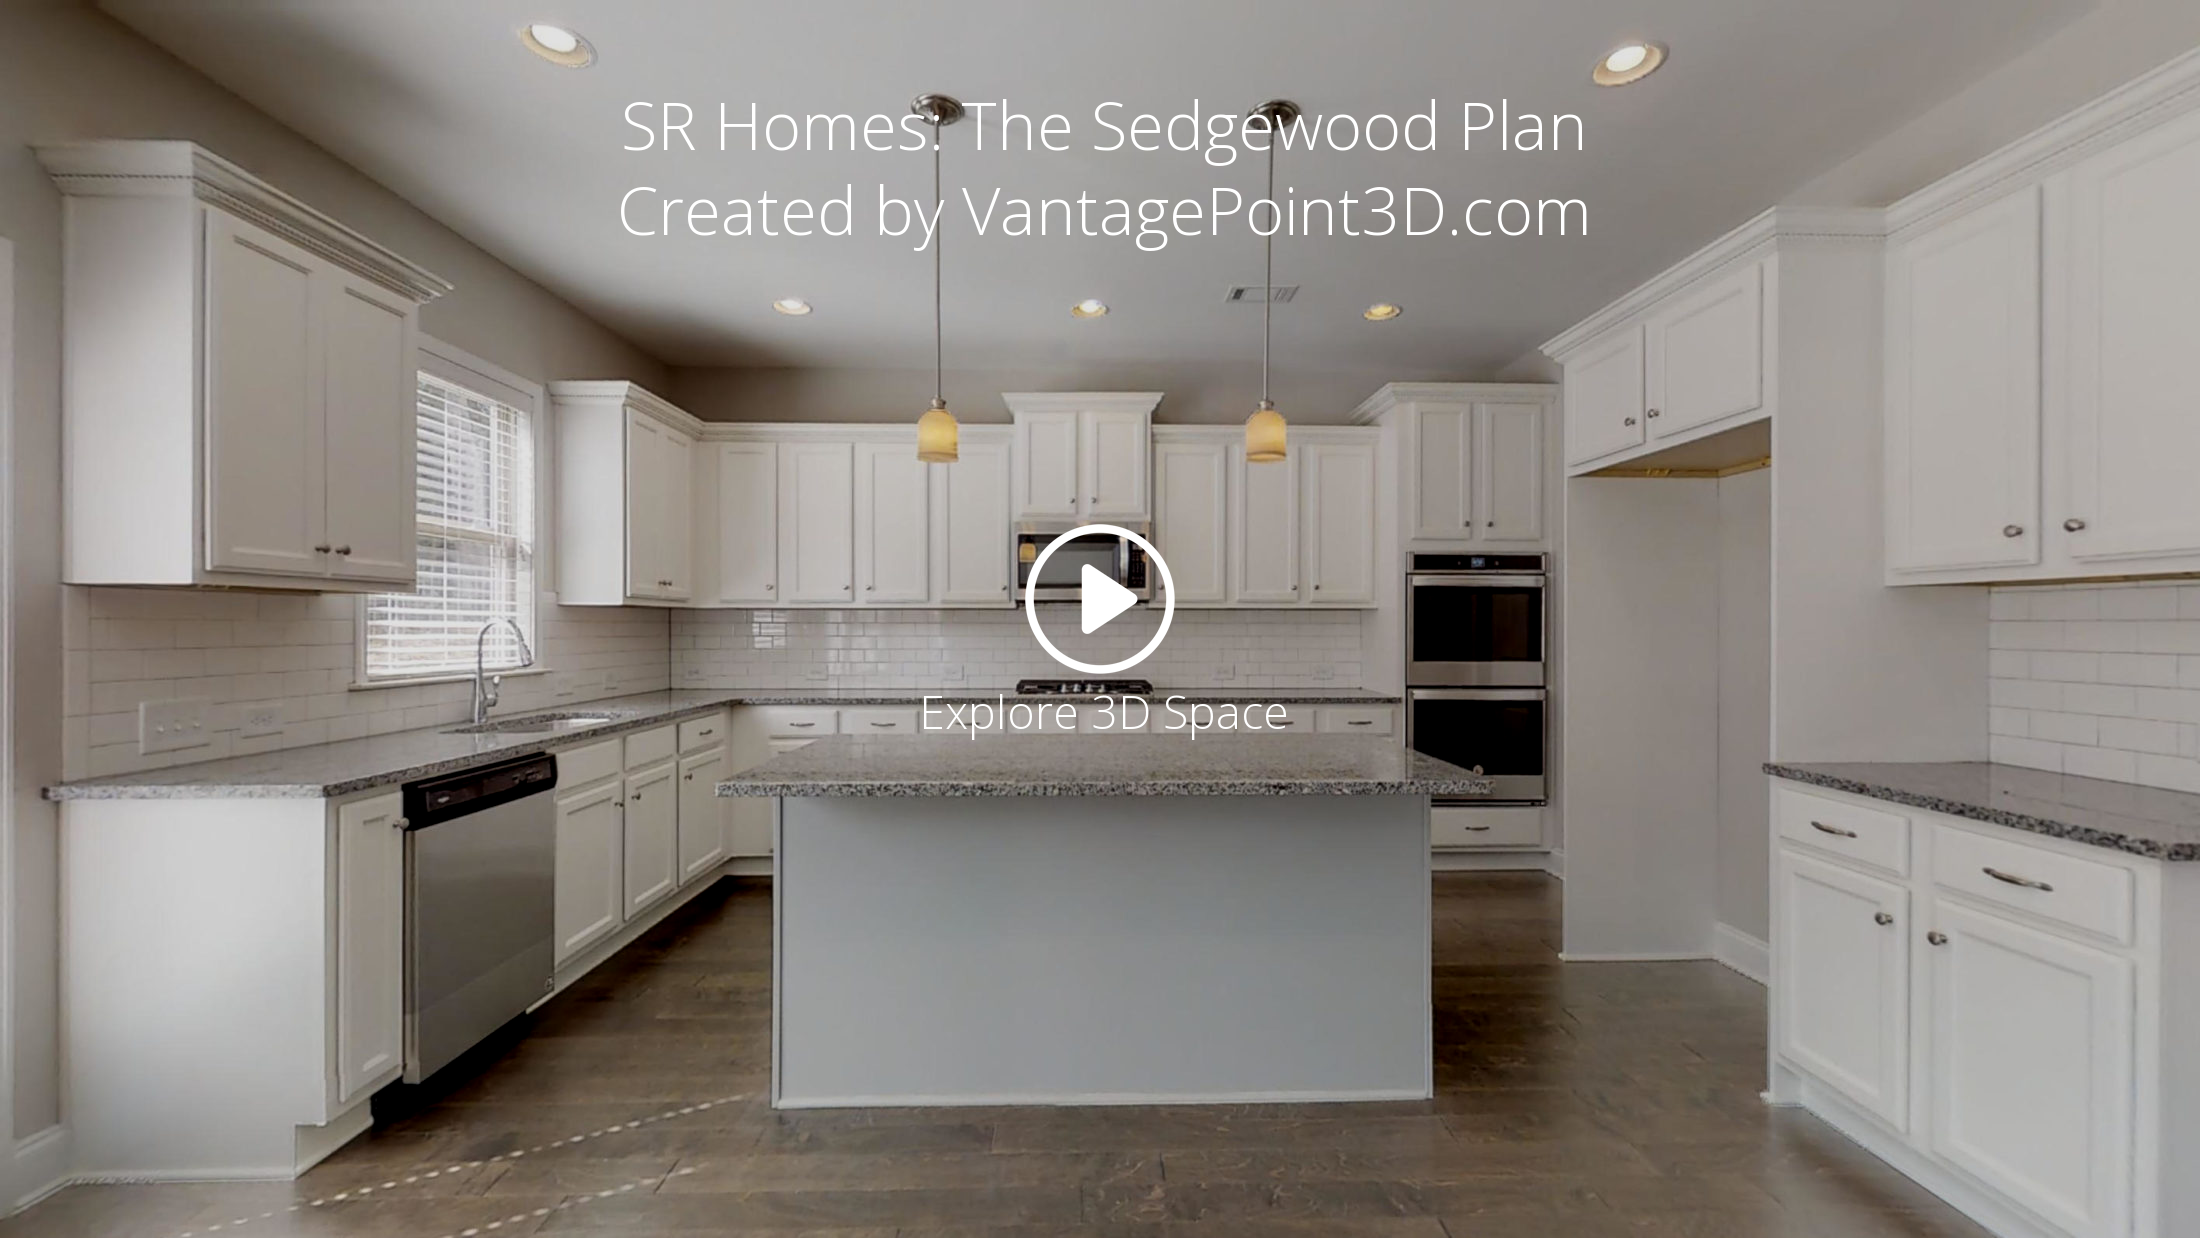 The-Sedgewood-Plan-Created-by-VantagePoint3Dcom-Kitchen